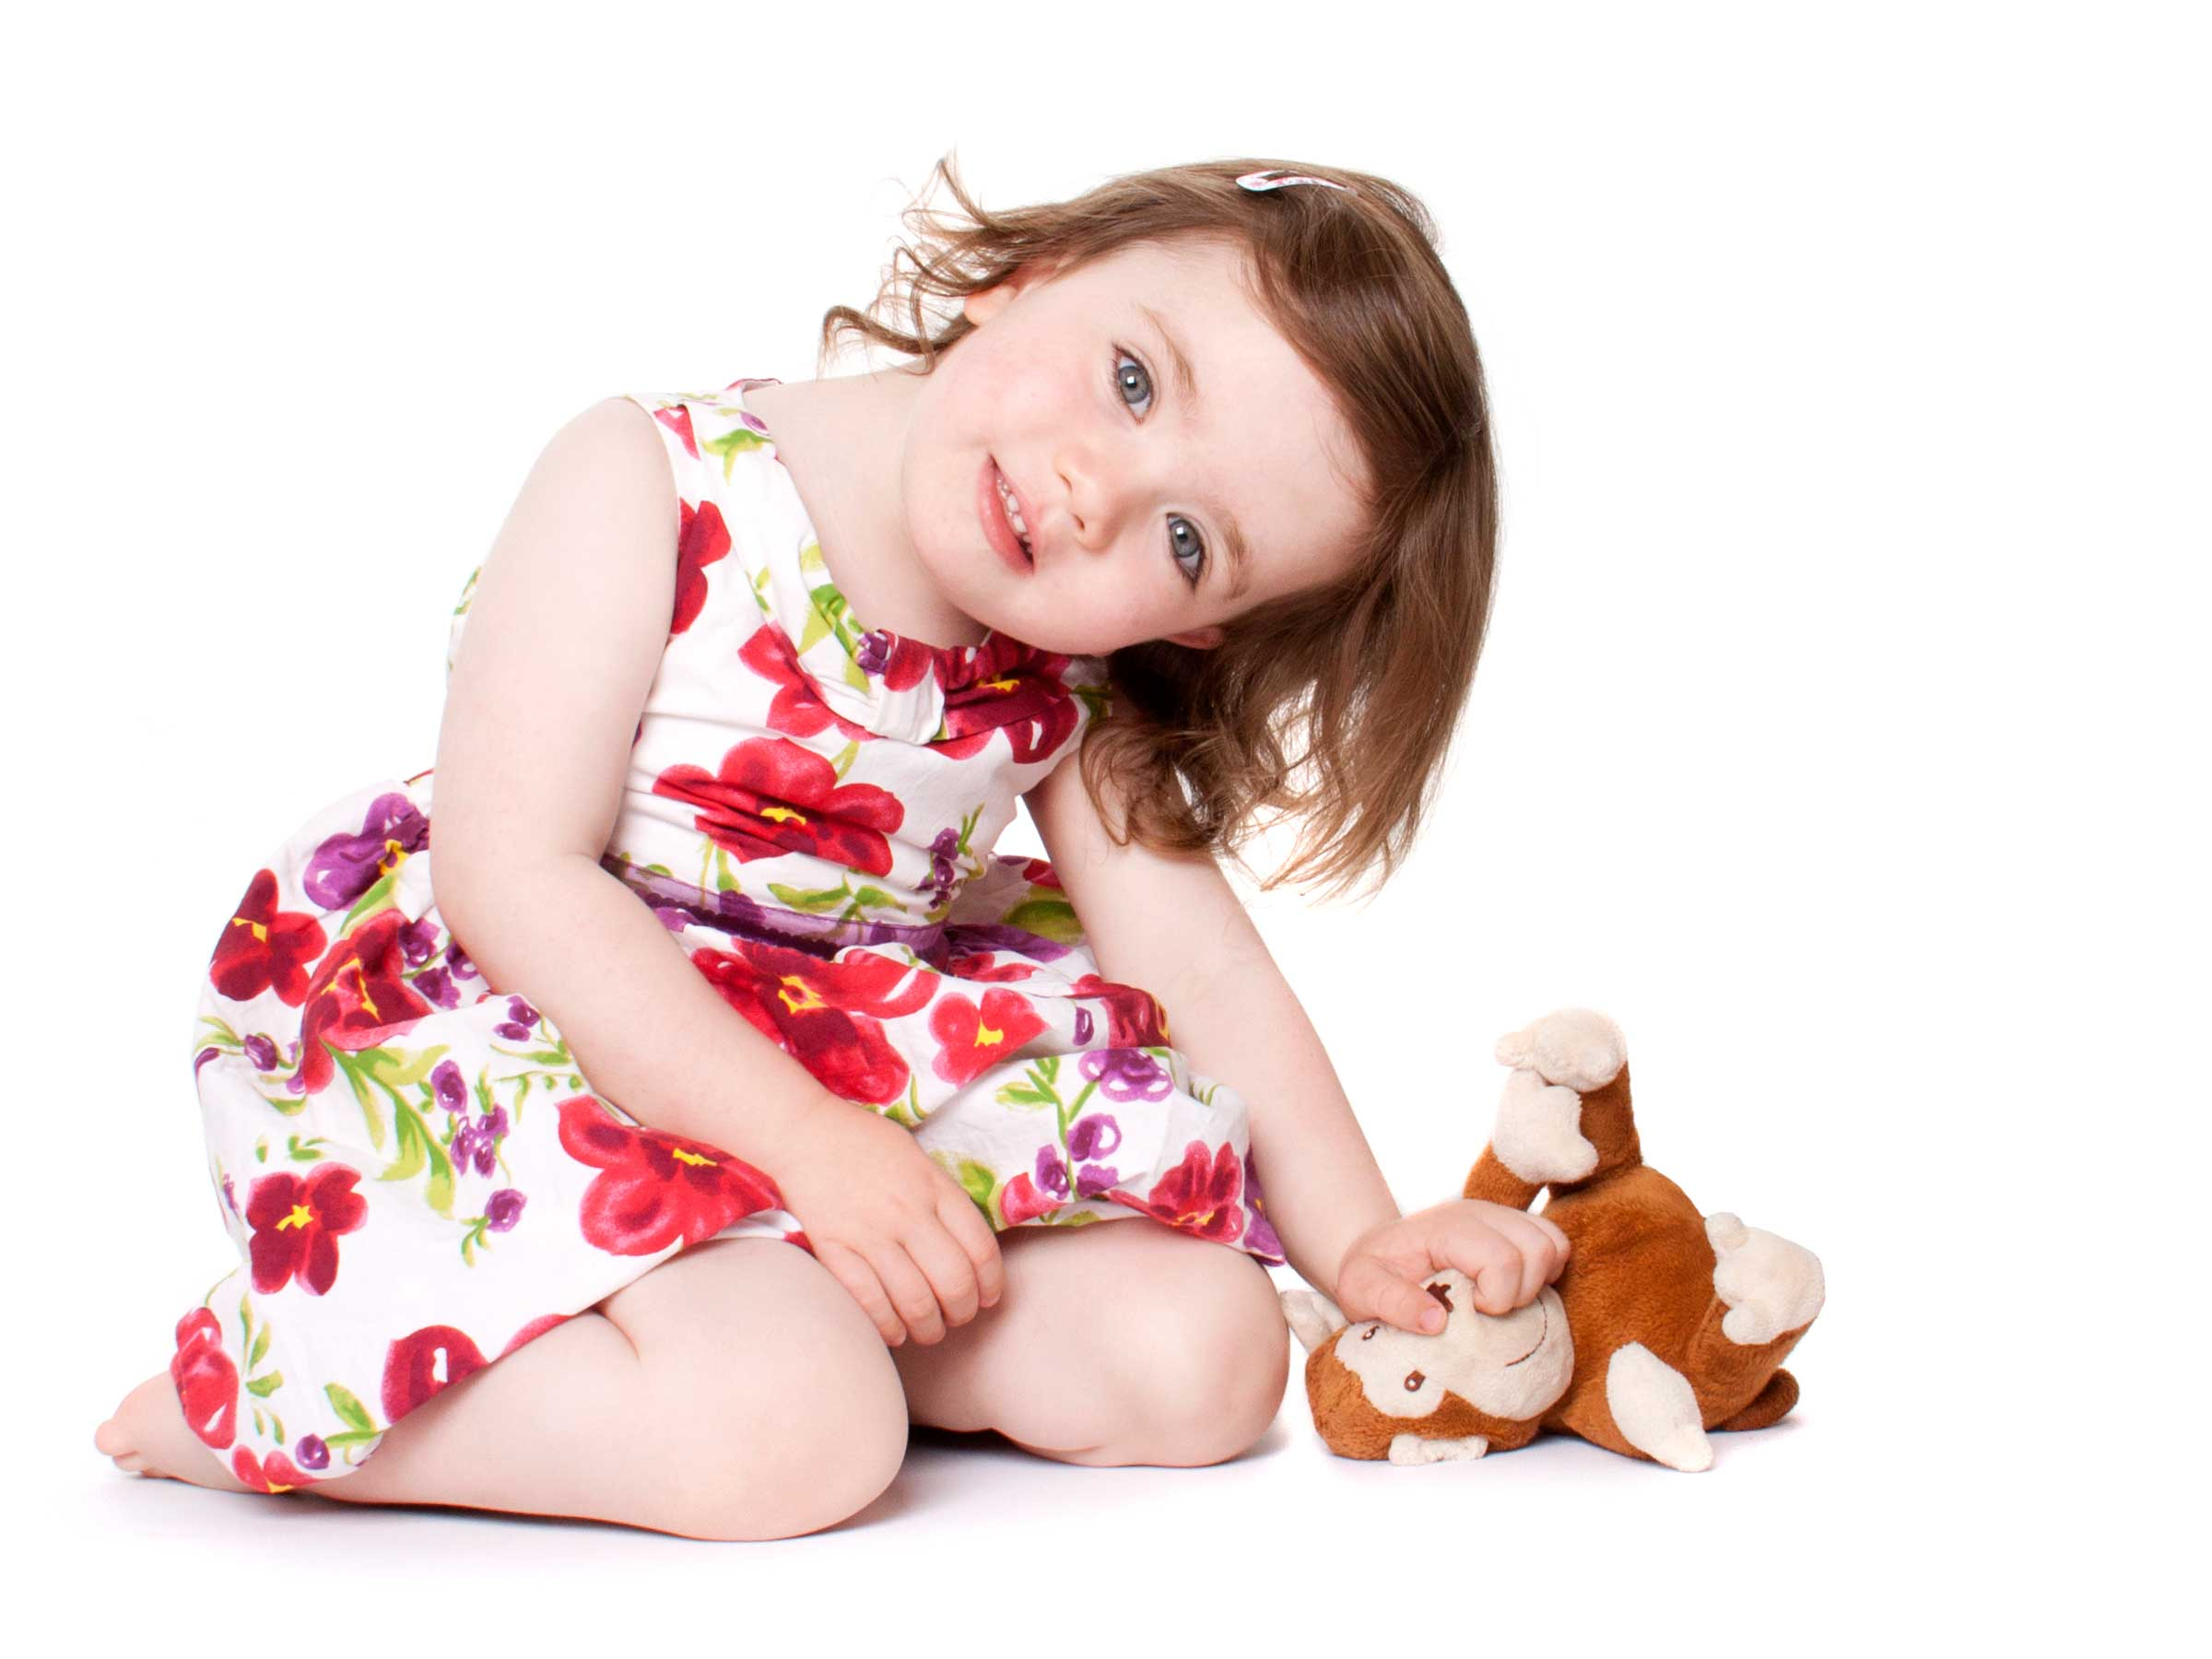 14-Home-Shoot-Toddler-Dress-Sitting-Monkey-Teddy-Colour-Philip-Murray-Photography-Dublin